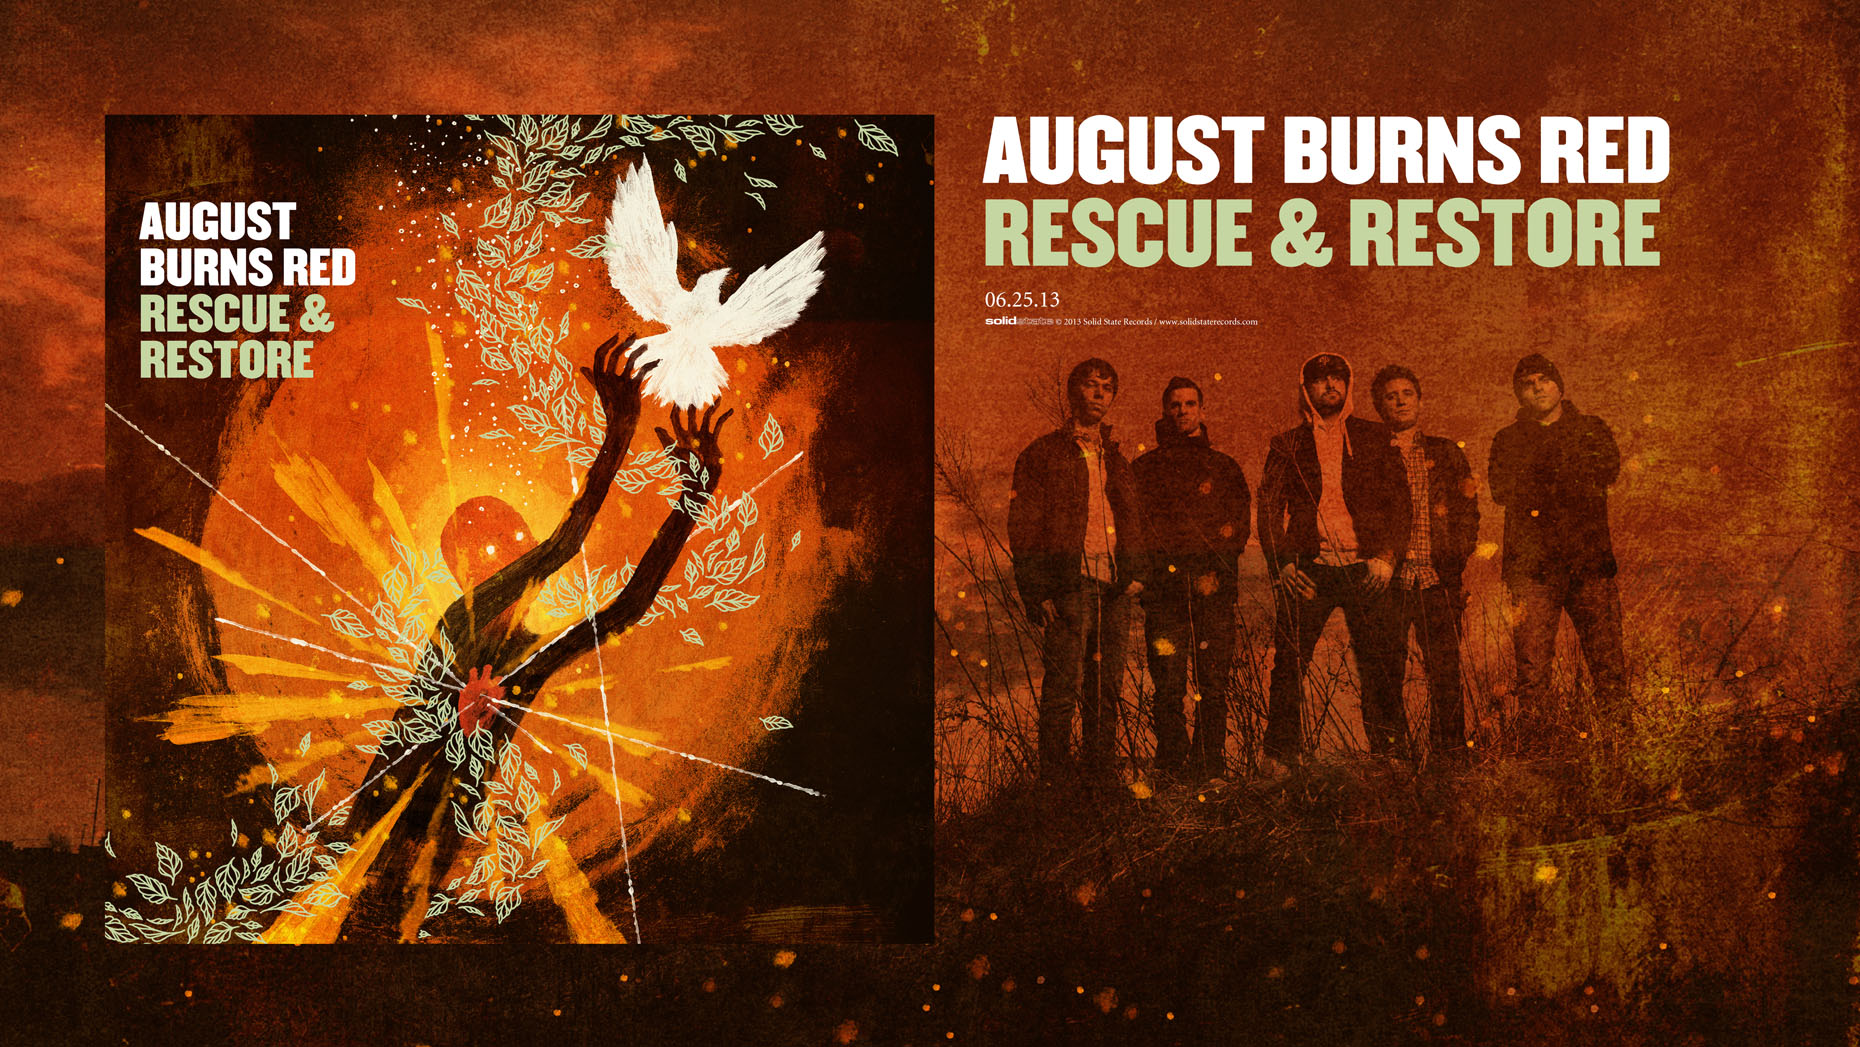 August Burns Red promotional poster